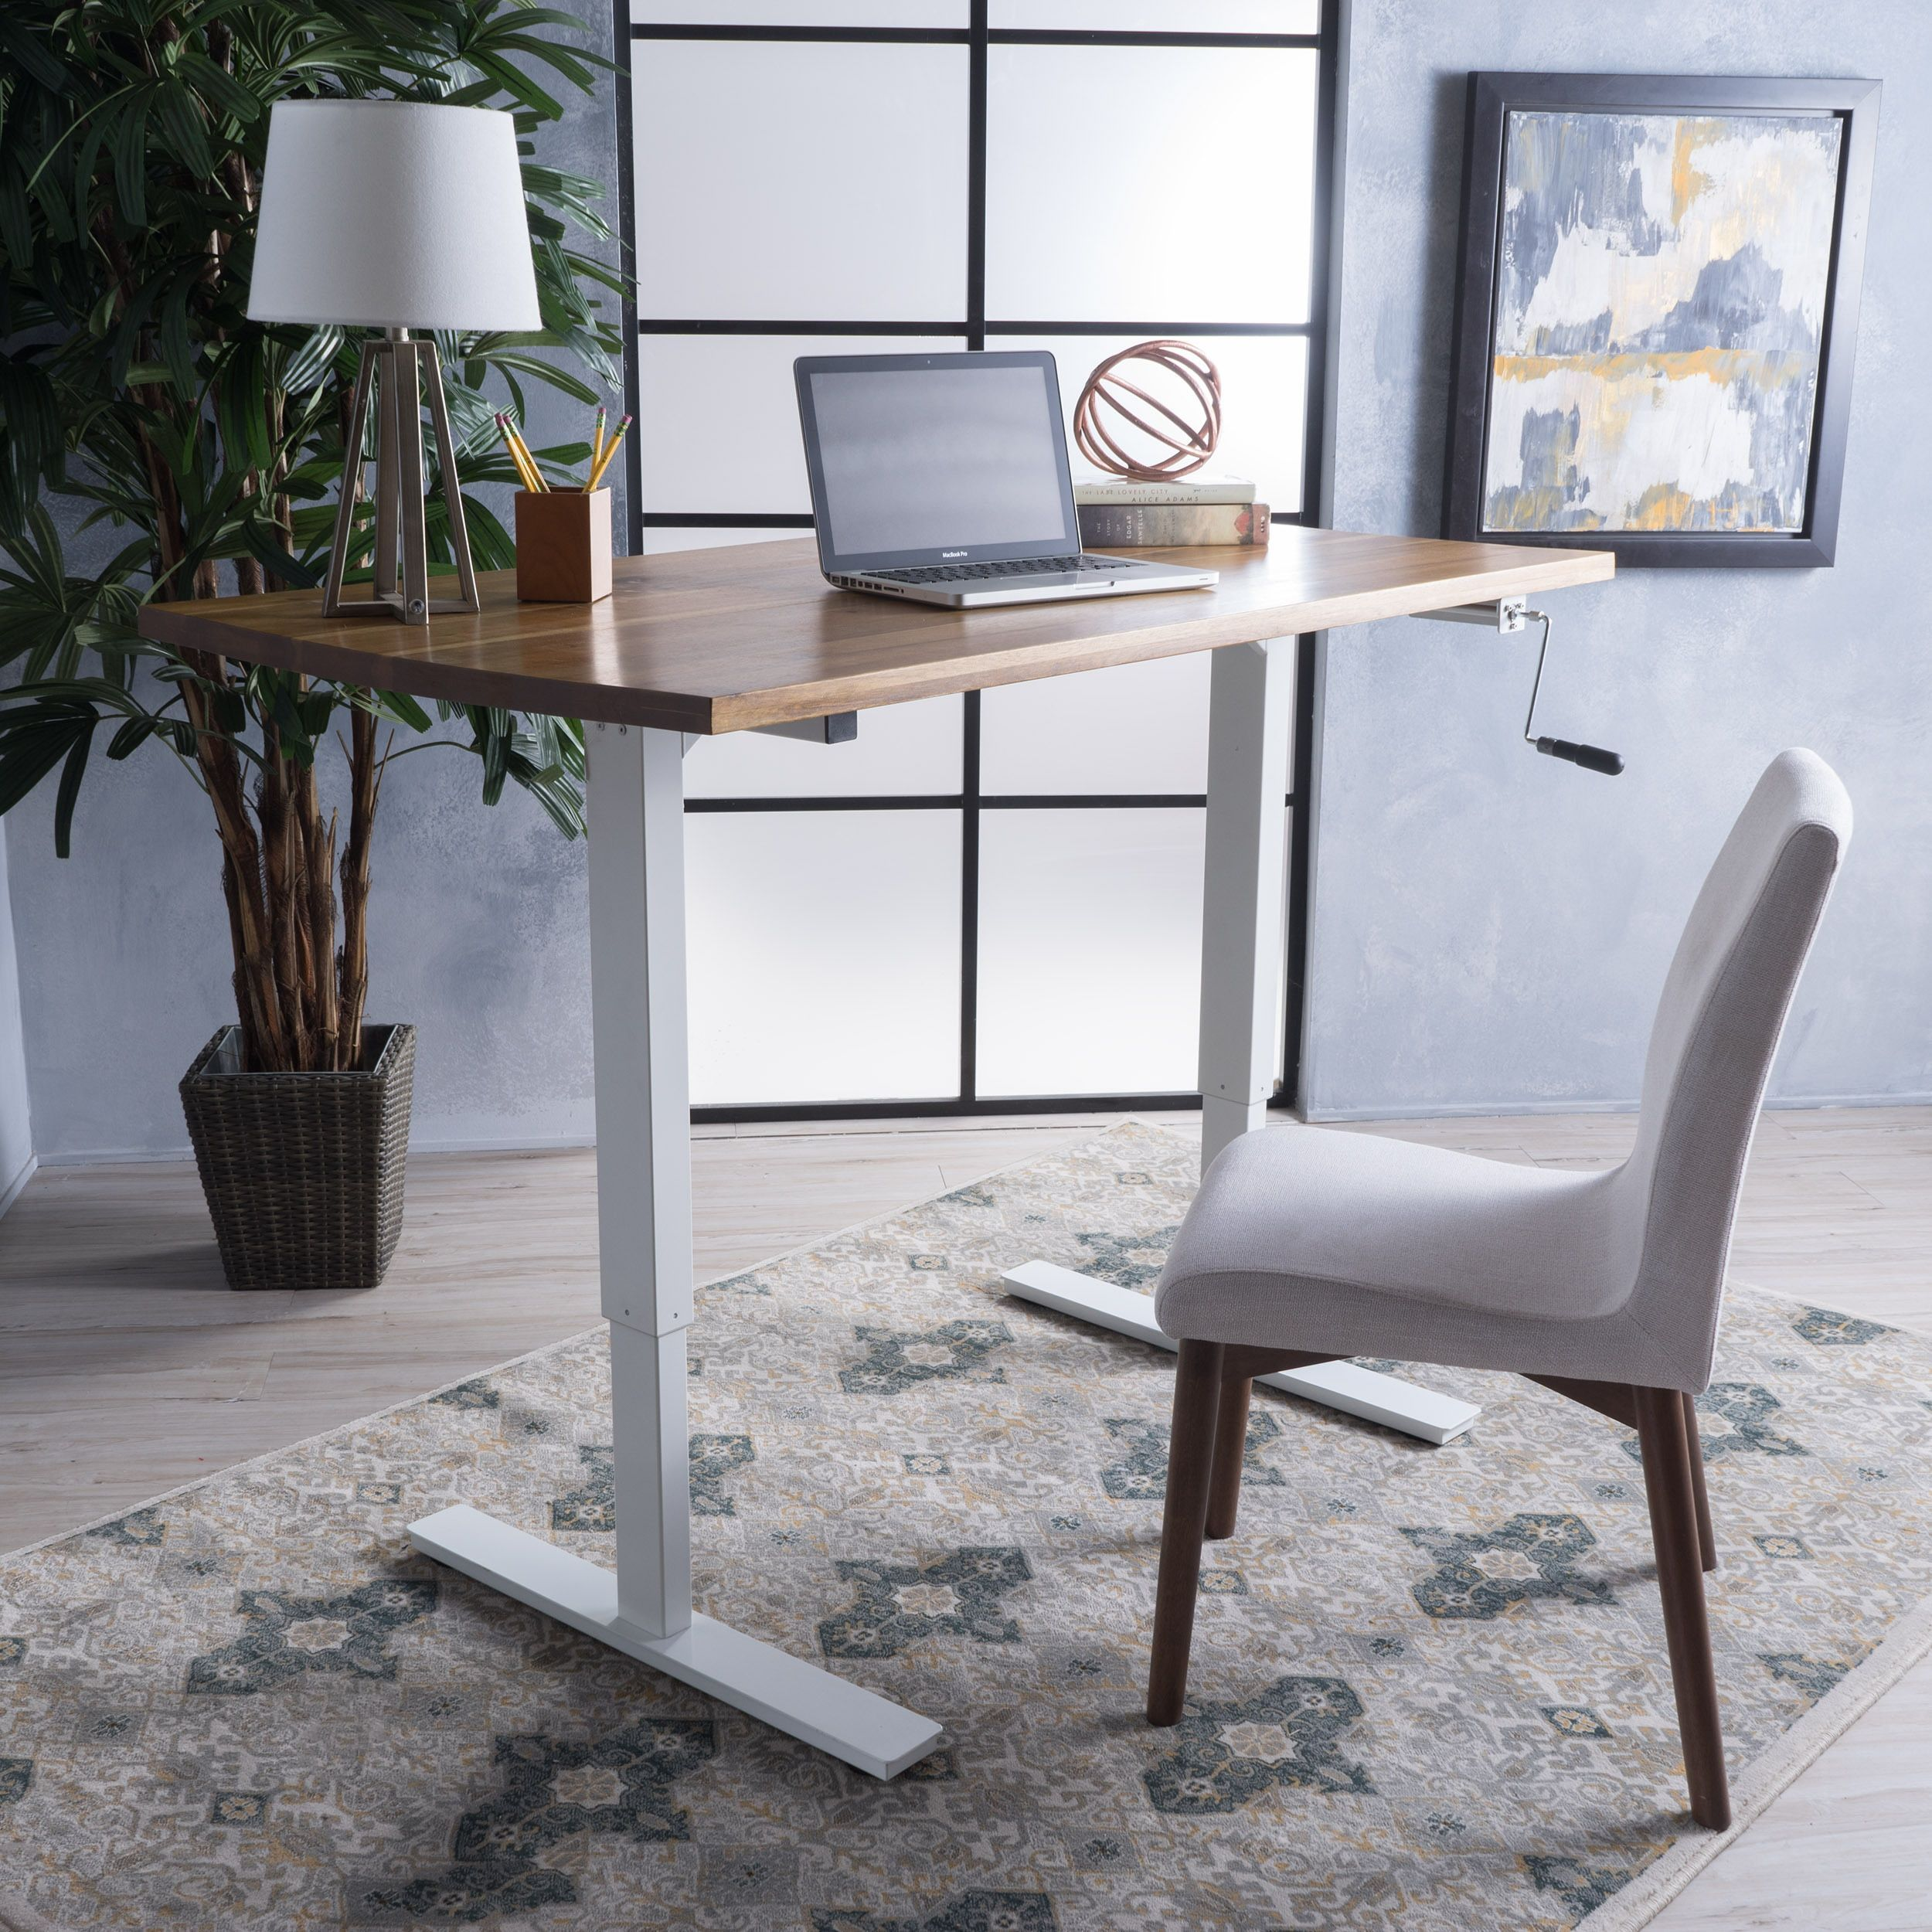 Jenson 58inch acacia wood desk with adjustable height and